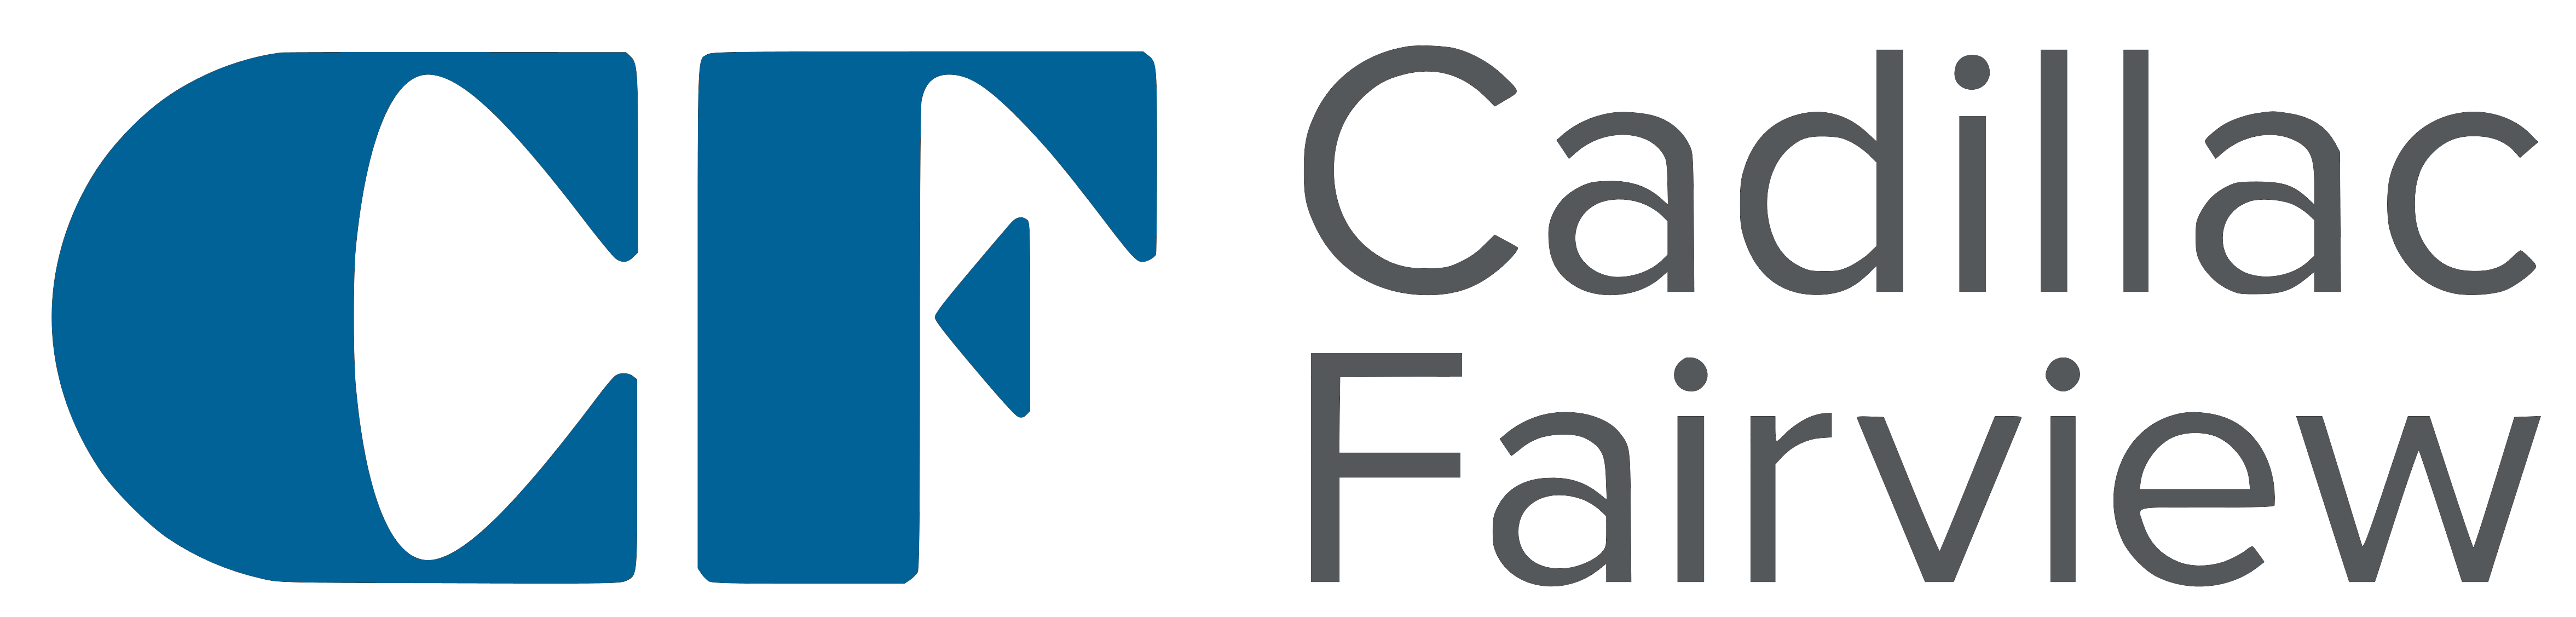 CF_Cadillac_Fairview_logo